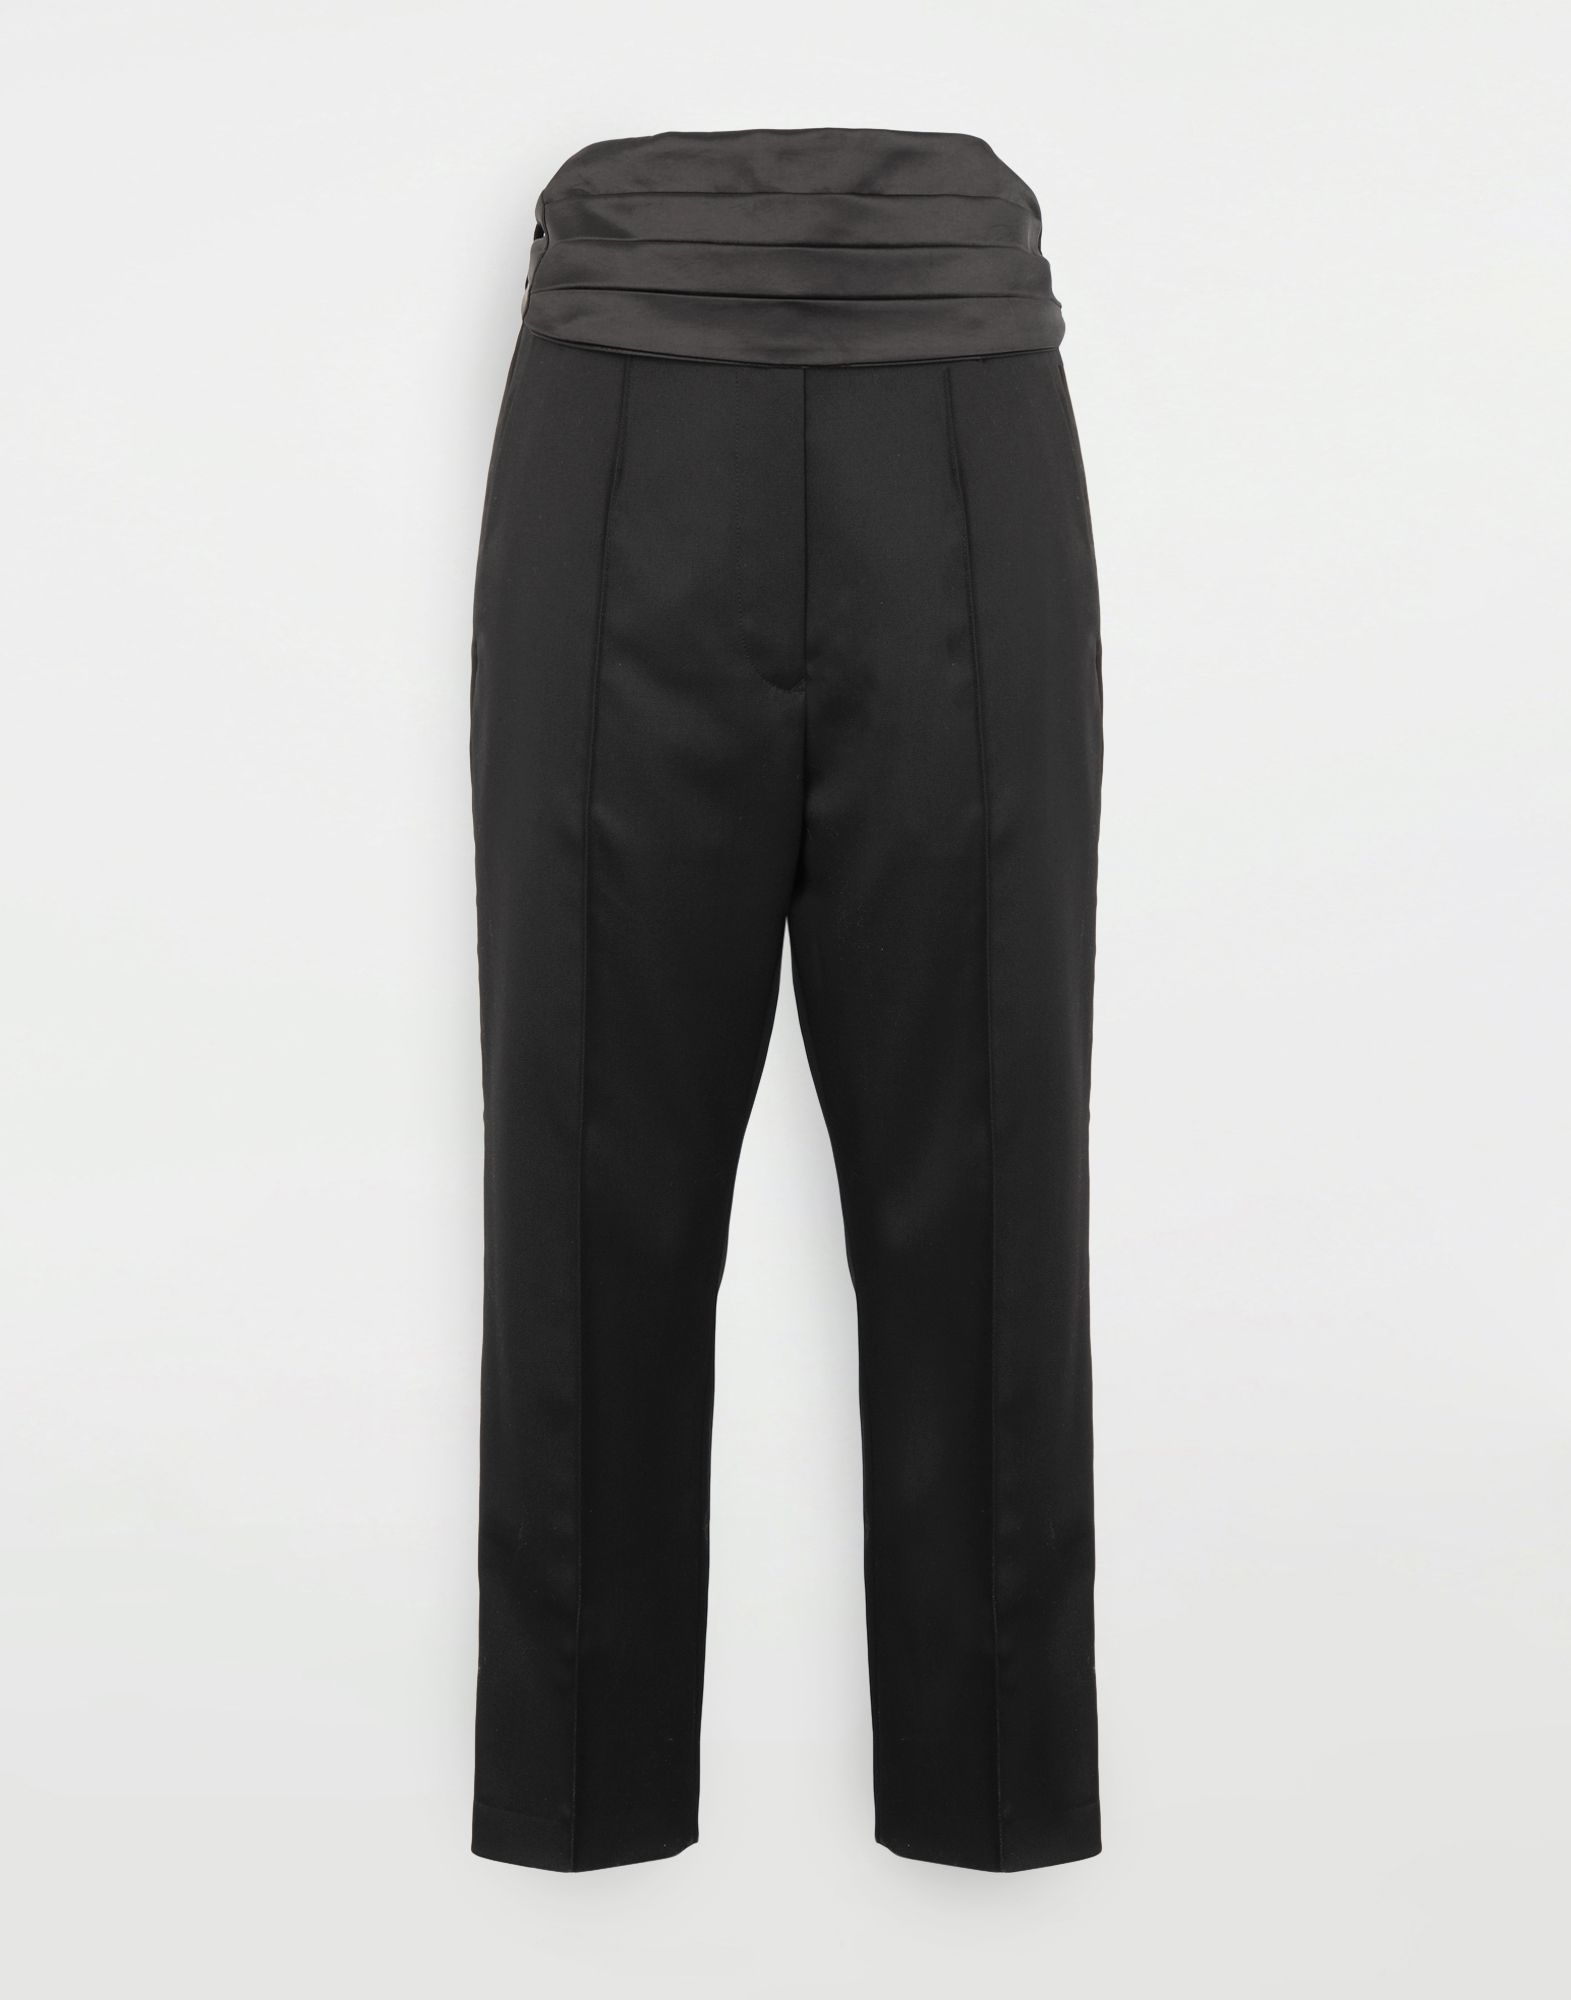 MM6 MAISON MARGIELA Trousers with belt Trousers Woman f